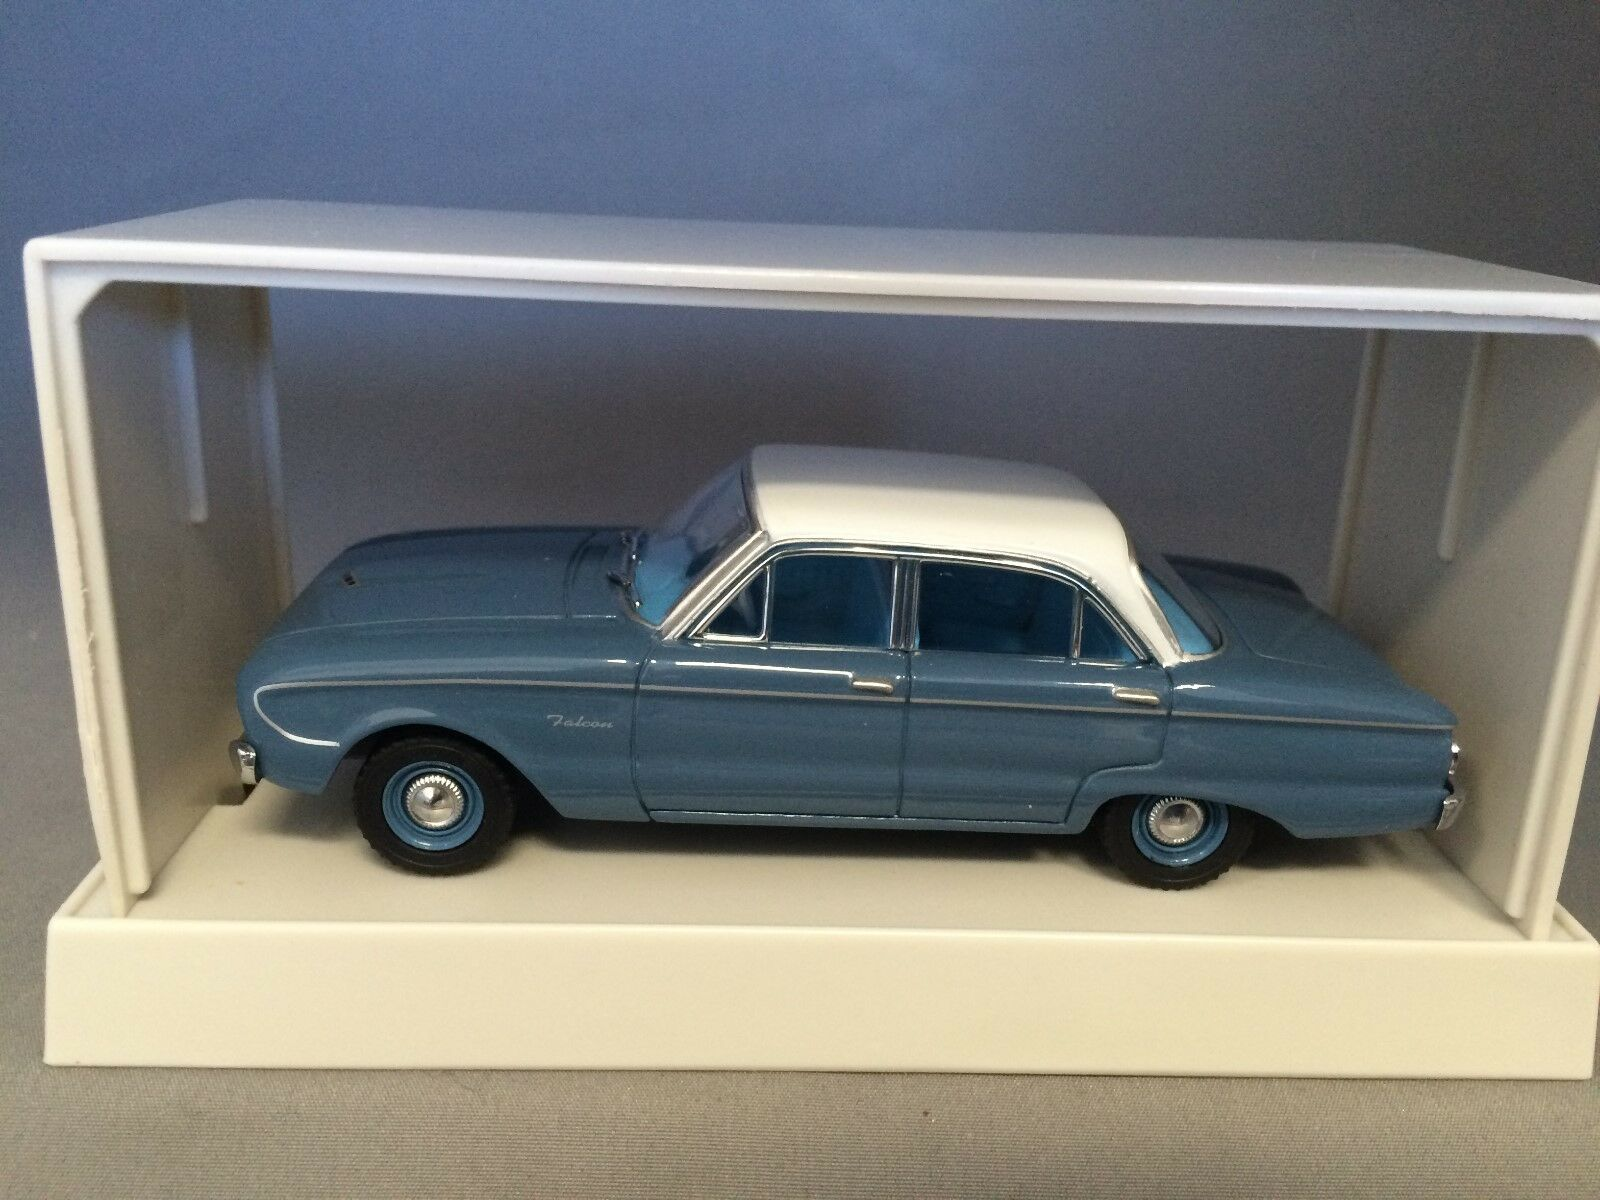 1 43 TRAX TR26D Ford Falcon XK XK Deluxe Sedan bluee white roof